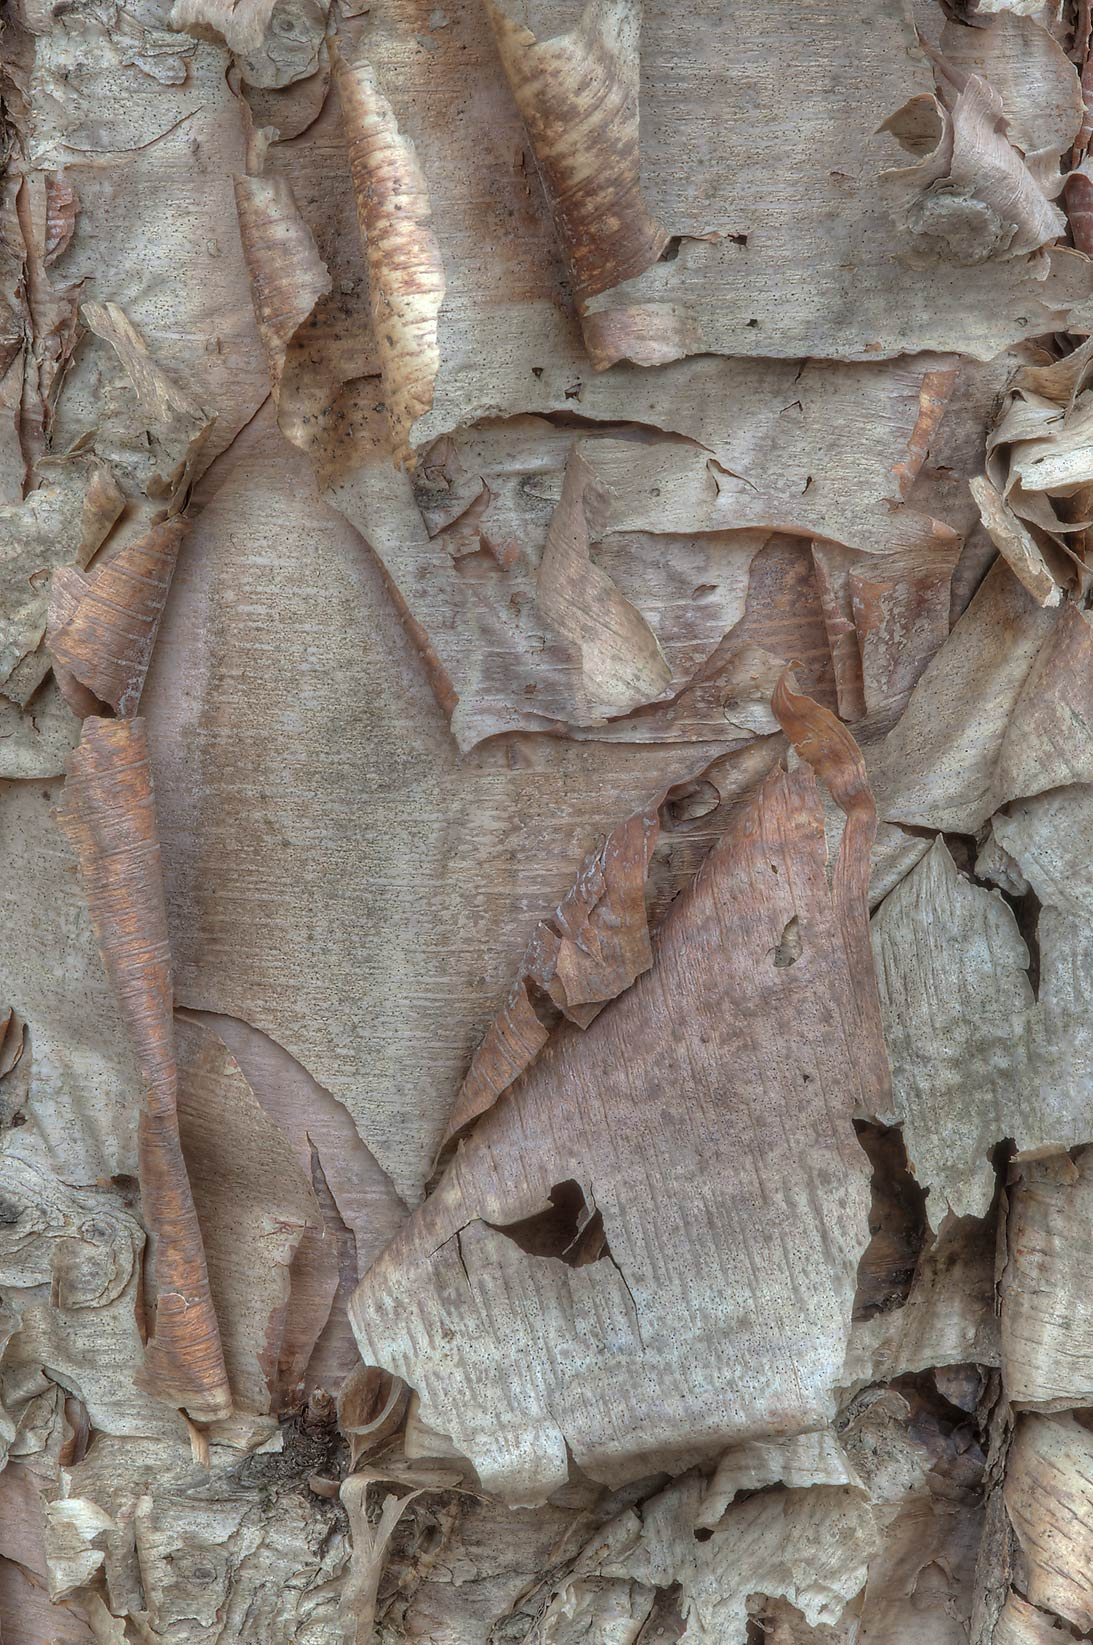 Peeling curls of bark of river birch (Betula...Creek Park. College Station, Texas